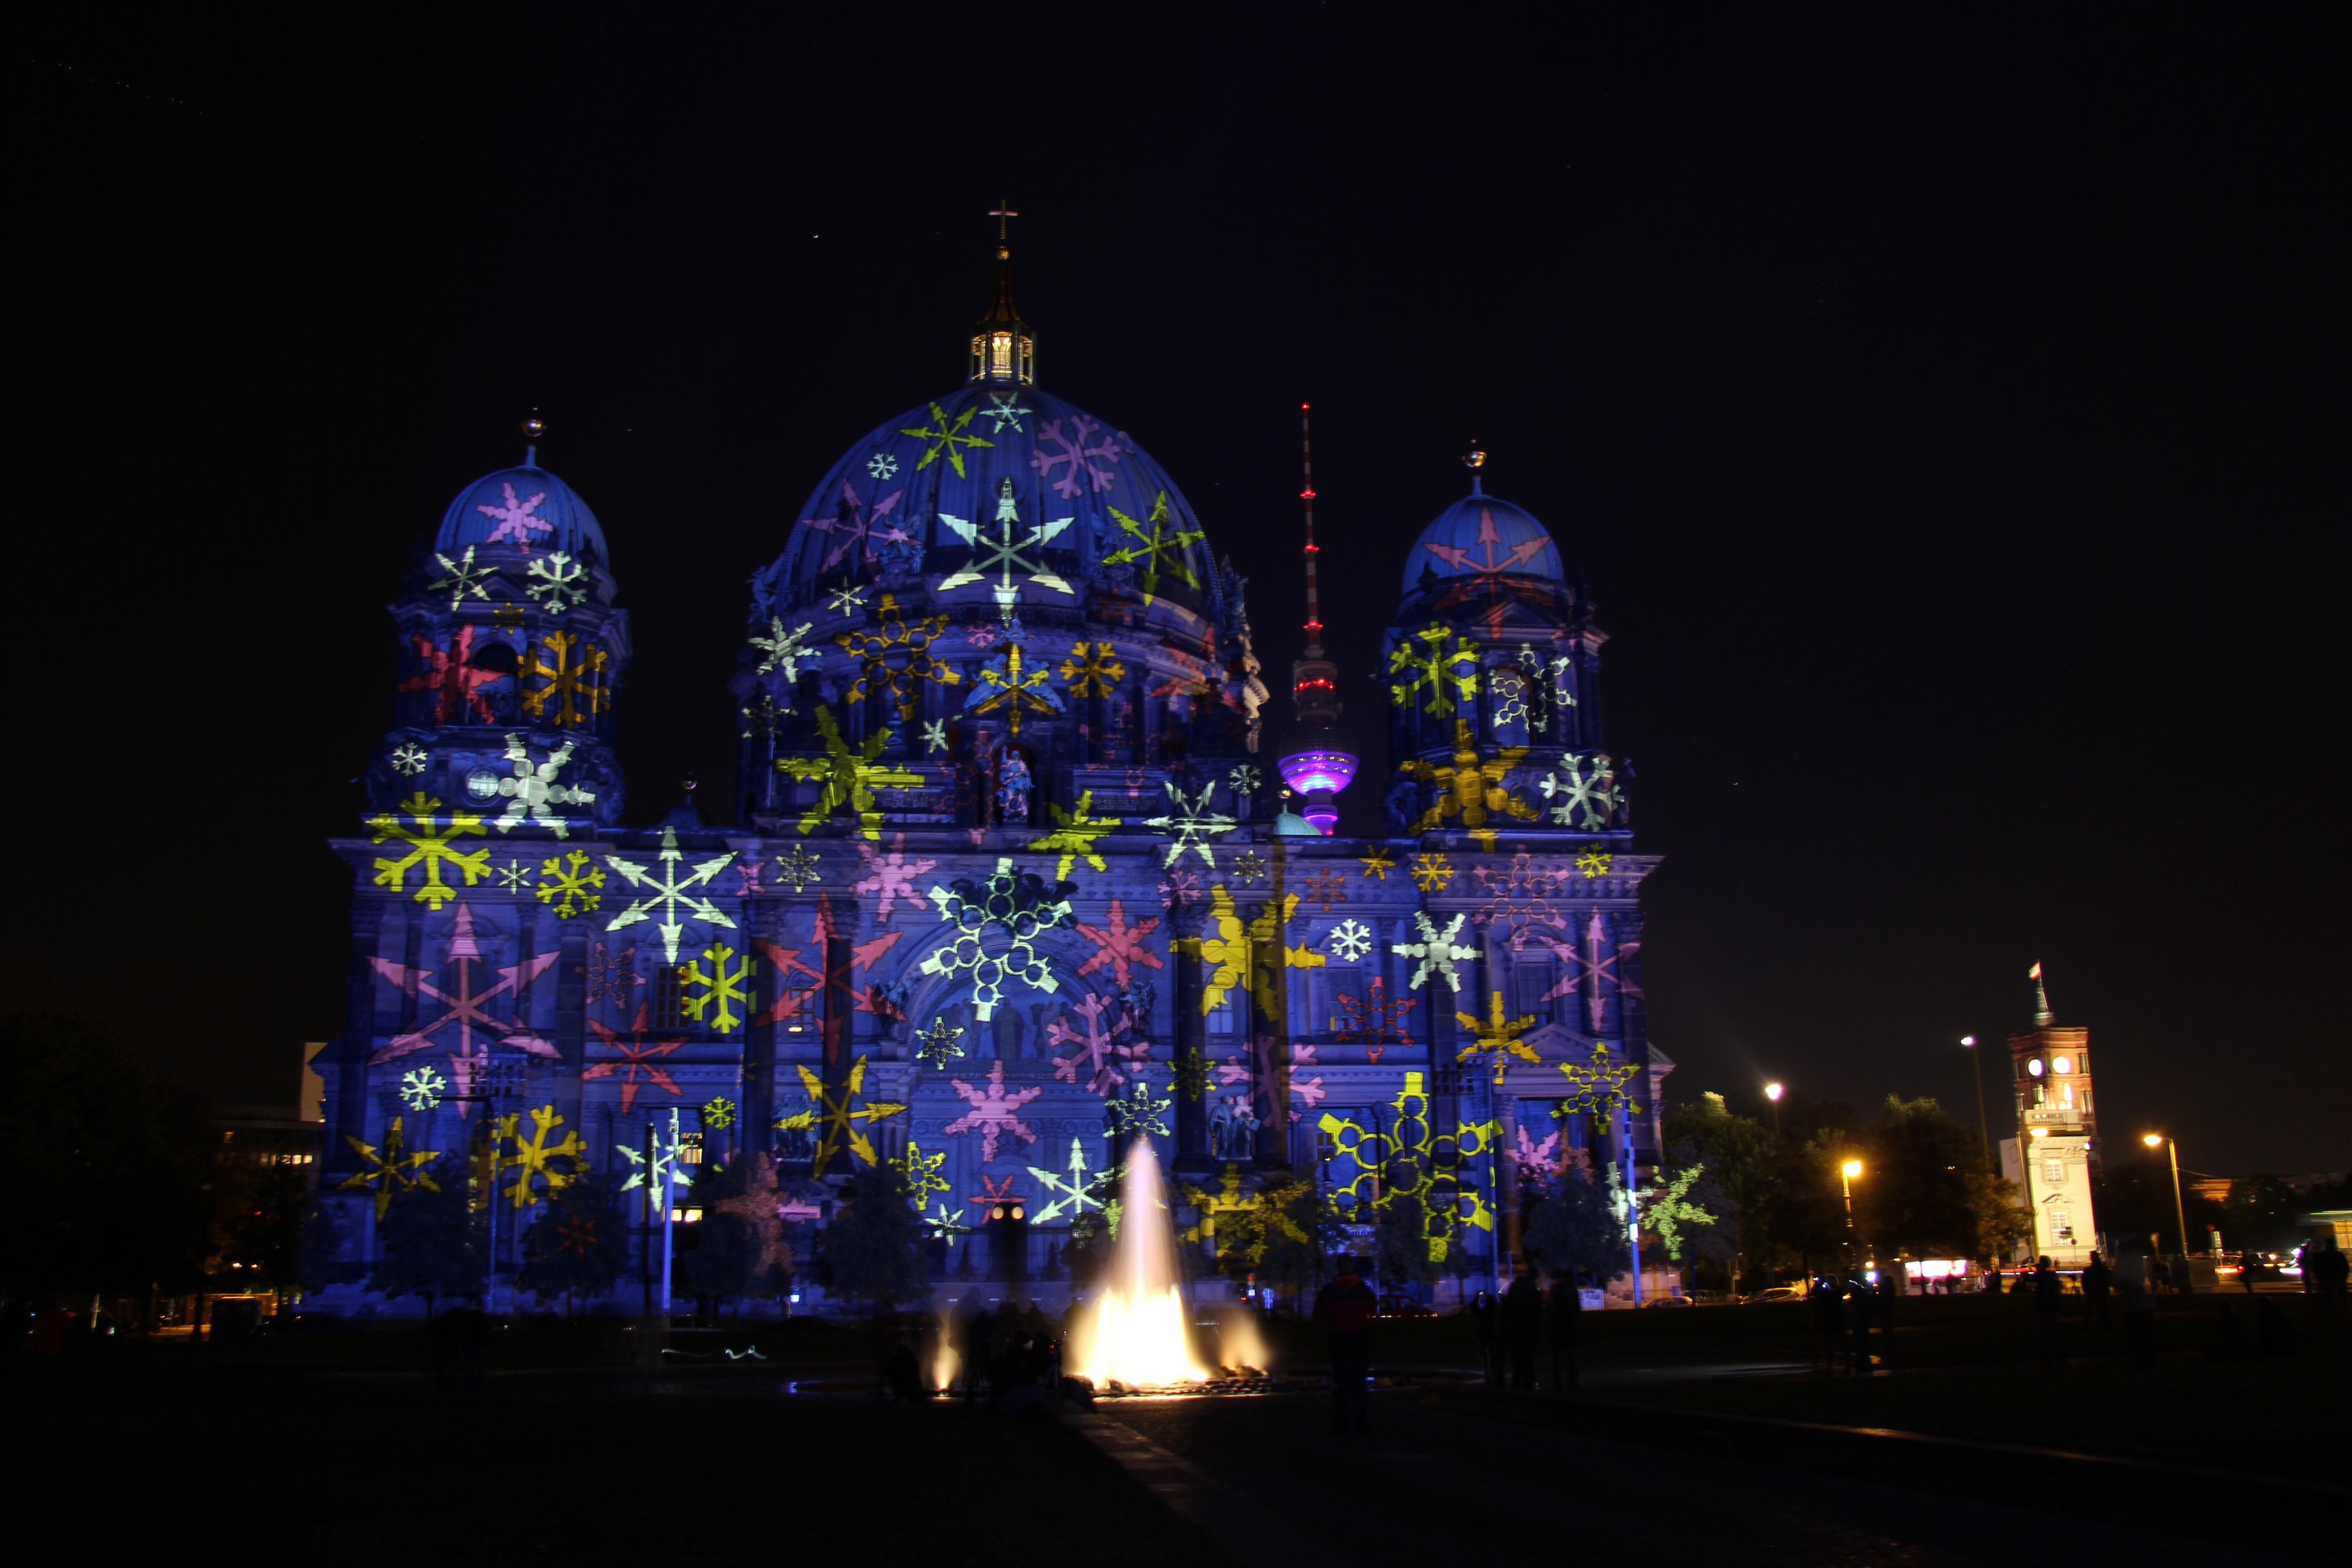 The Berliner Dom (Berlin Cathedral) with a snowflakes projection by Urlaubsland Österreich (Tourist Country Austria) during the Festival of Lights